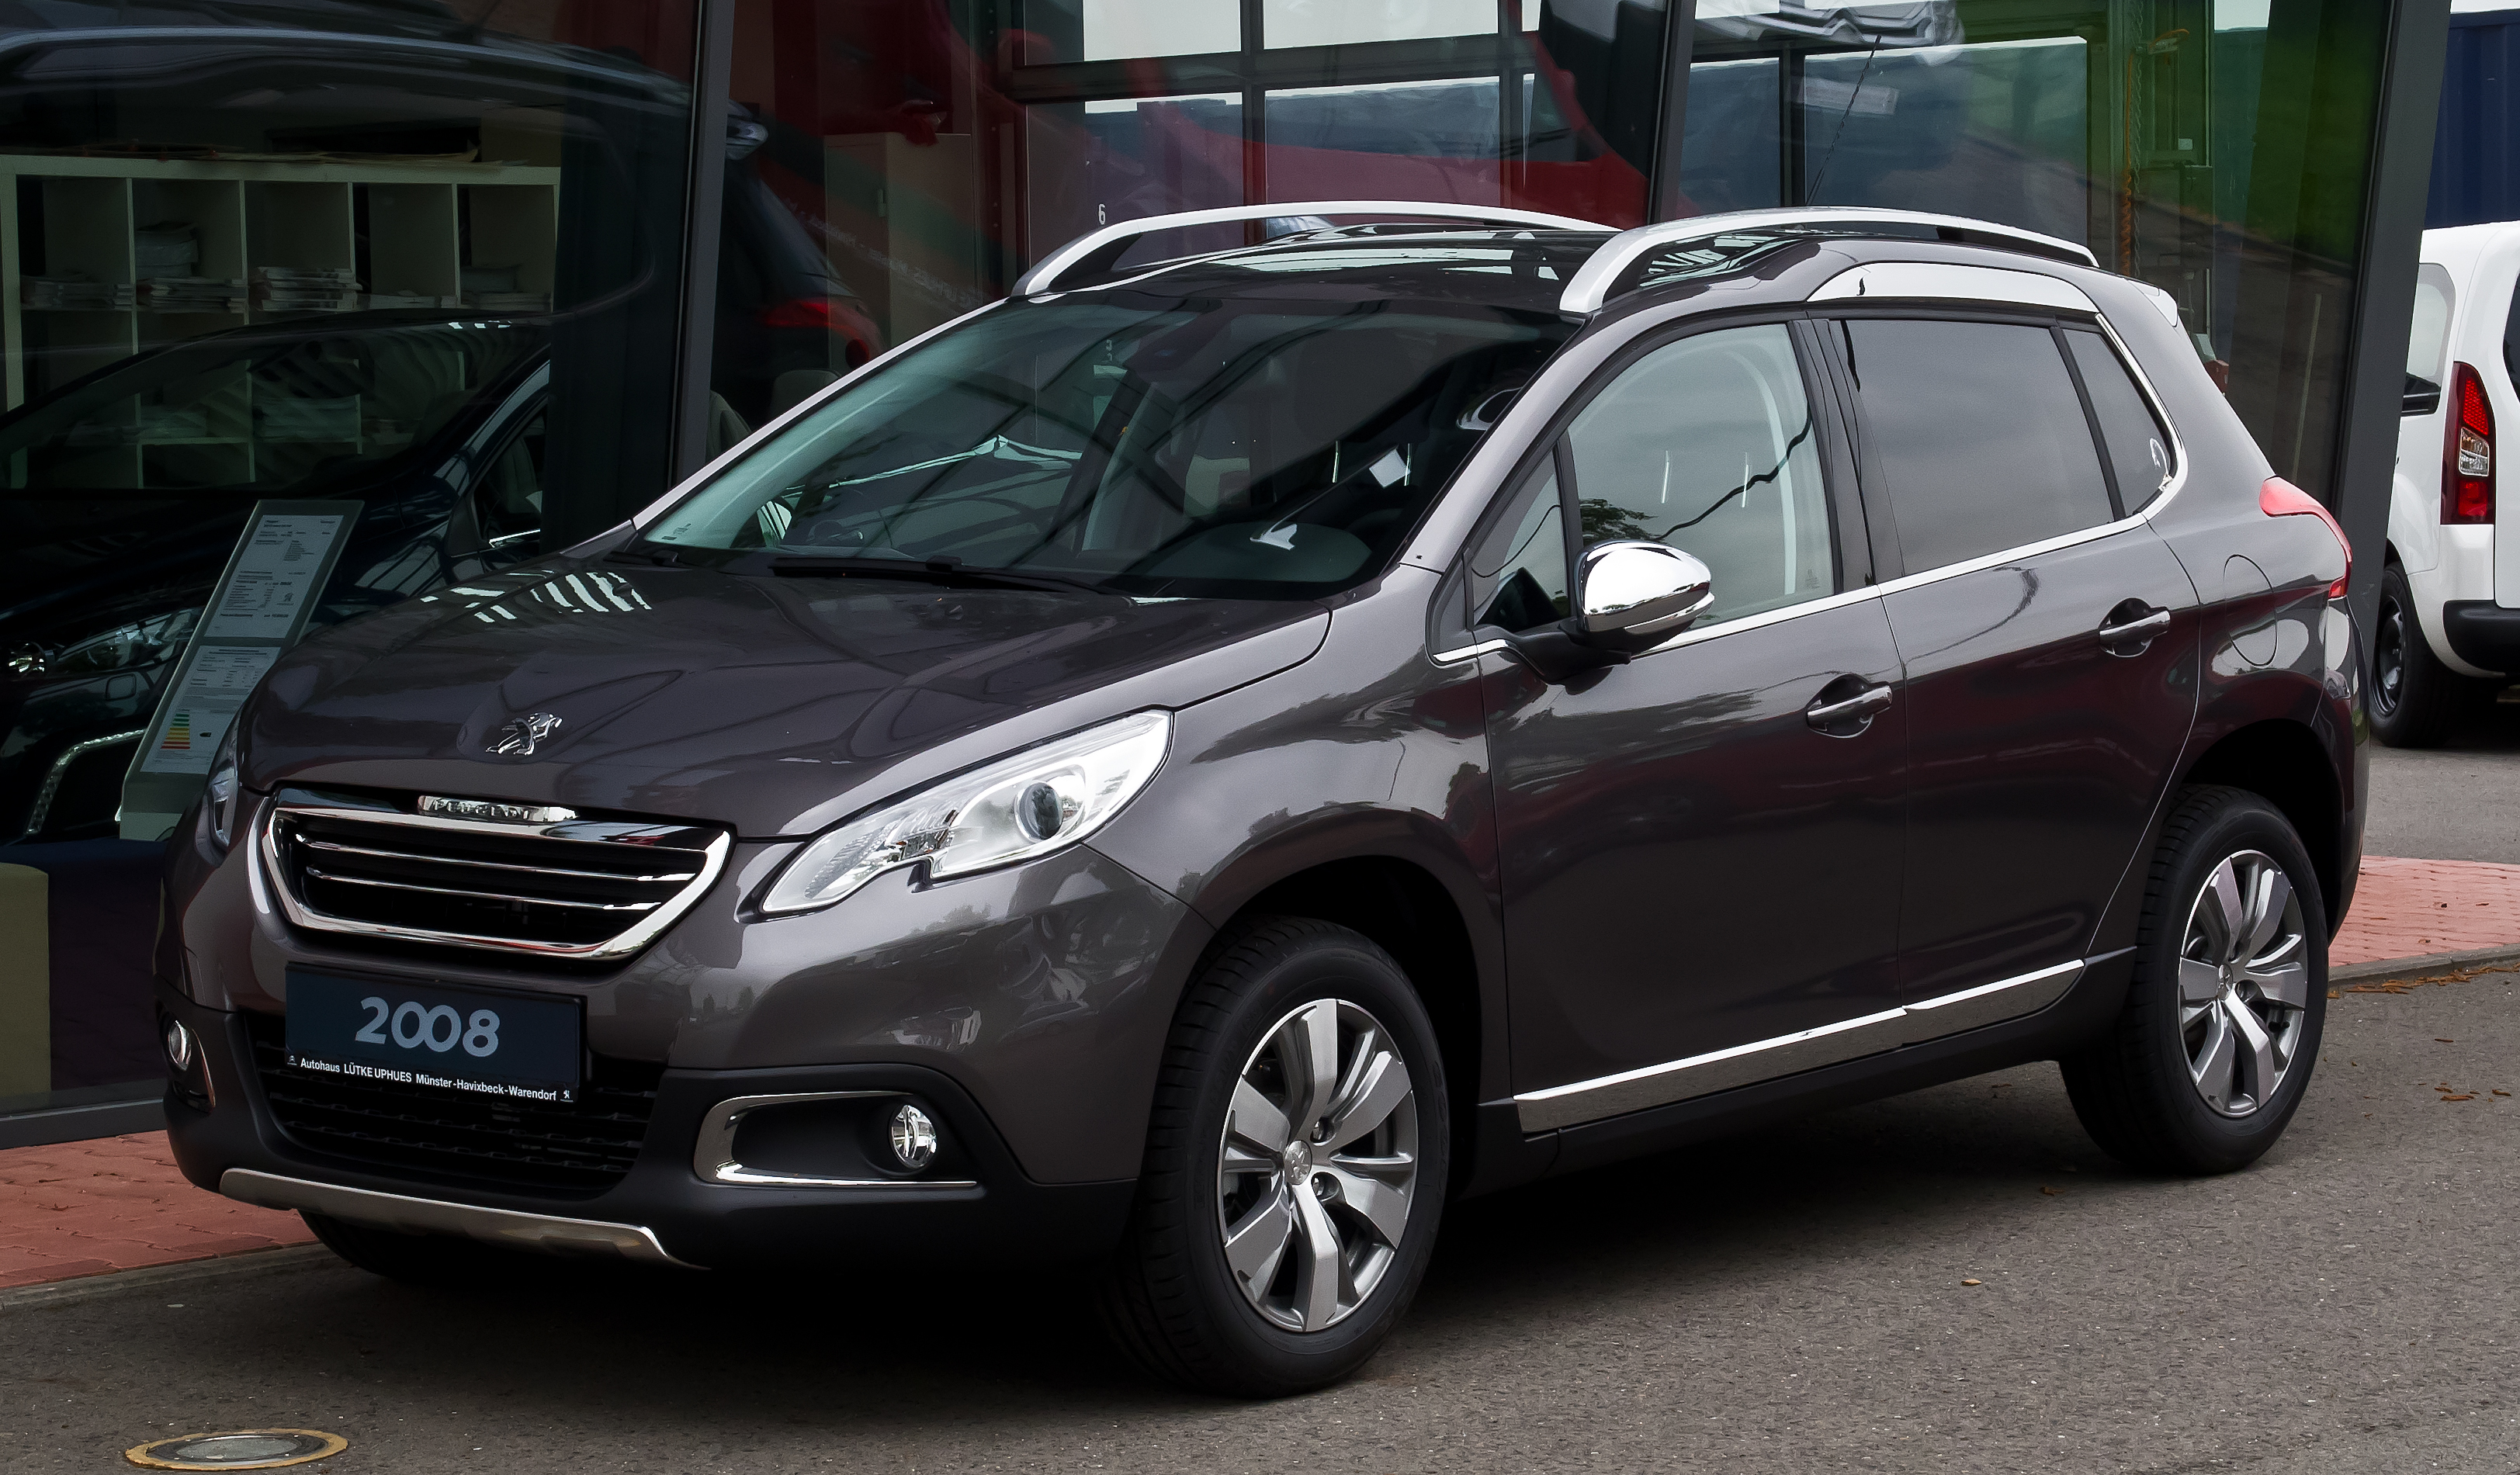 Description Peugeot 2008 82 VTi Allure Frontansicht 18 Mai 2013